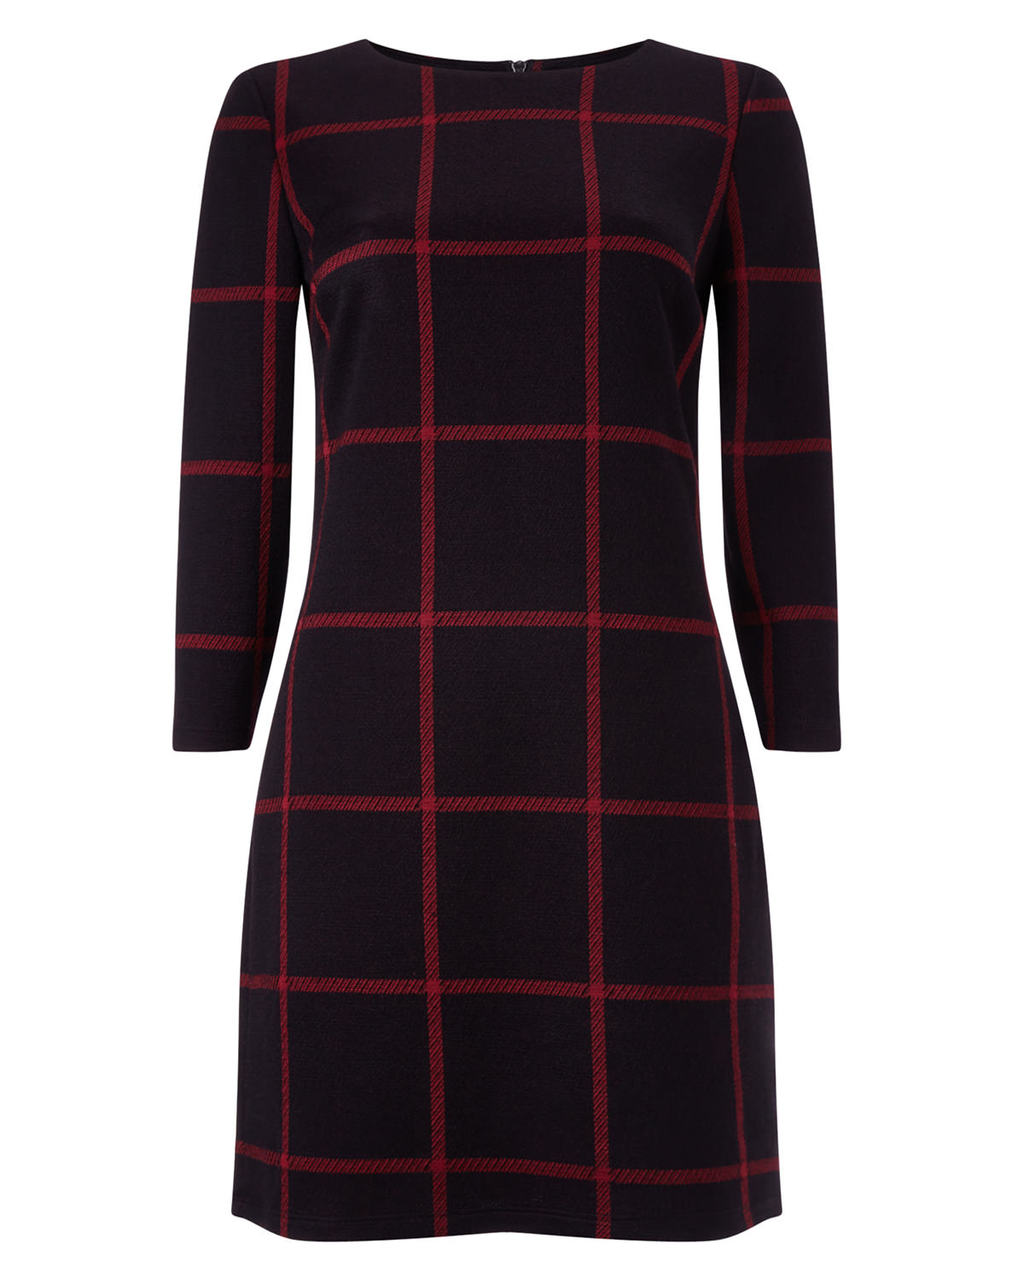 Check Ponte Tunic - neckline: round neck; pattern: checked/gingham; style: tunic; secondary colour: true red; predominant colour: black; occasions: casual, creative work; fit: body skimming; length: mid thigh; sleeve length: 3/4 length; sleeve style: standard; texture group: knits/crochet; pattern type: knitted - fine stitch; pattern size: big & busy (top); season: a/w 2015; wardrobe: highlight